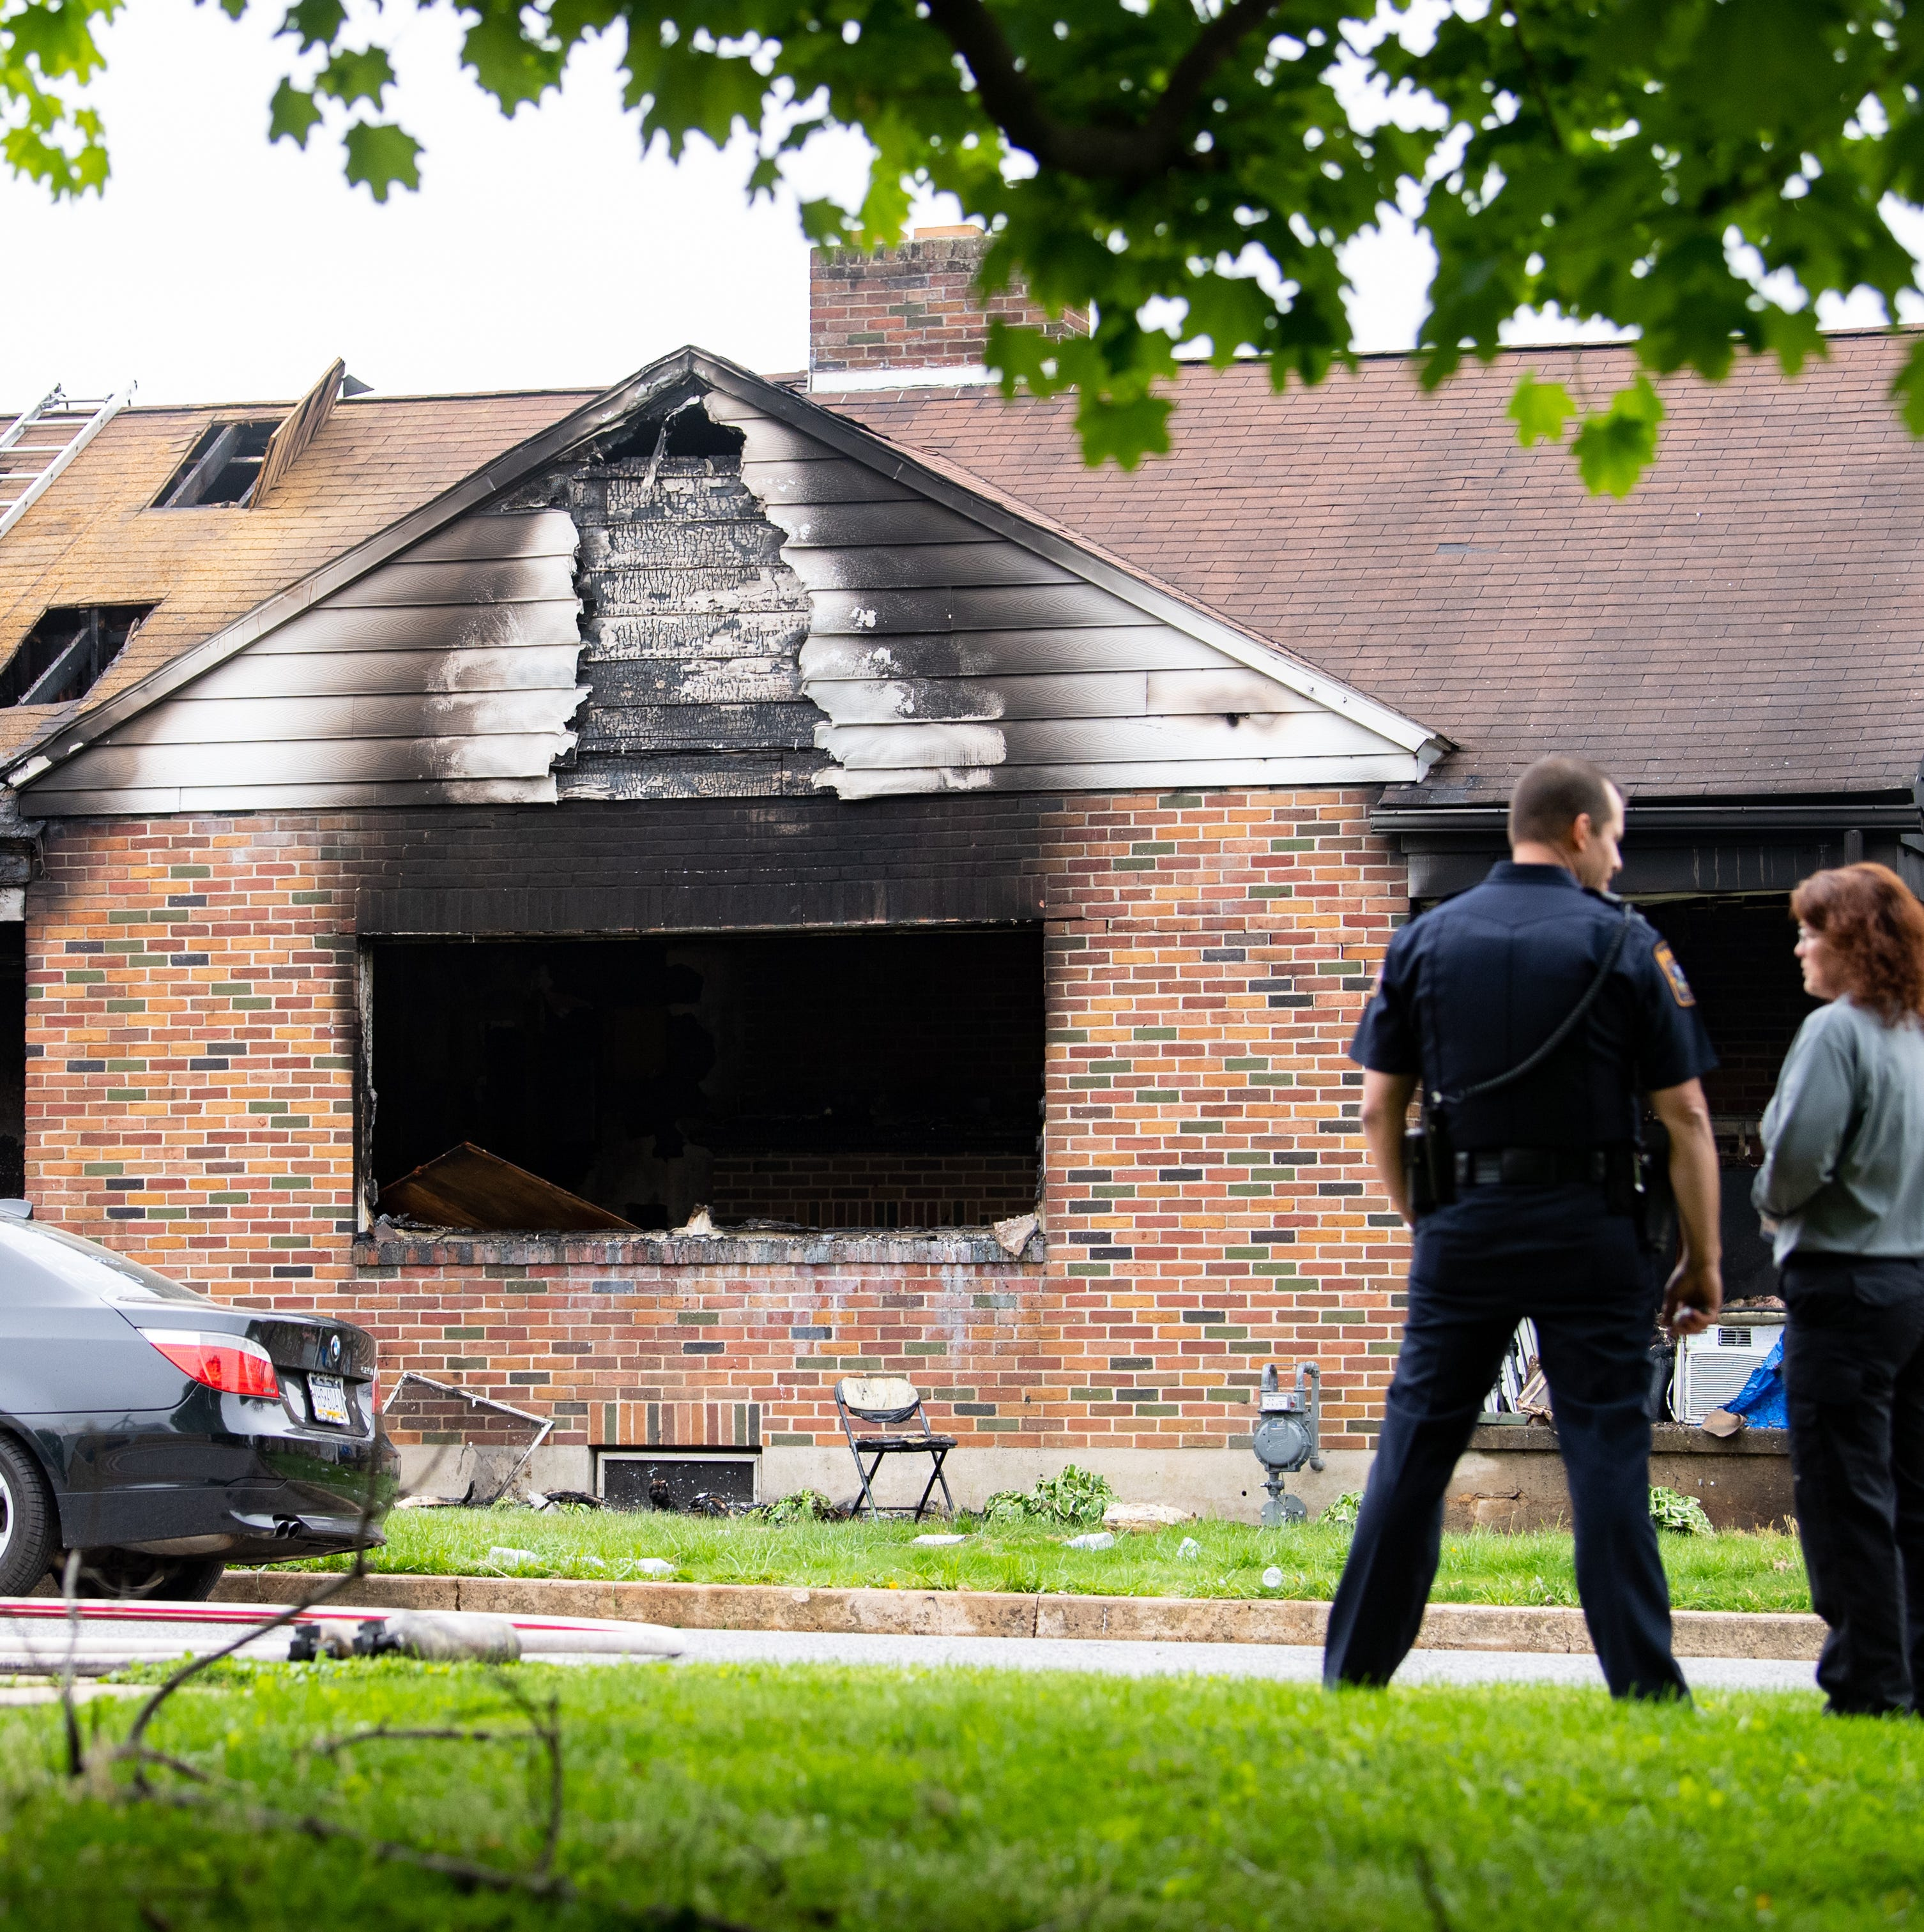 Careless smoking caused fatal fire in West Manchester Township, chief says